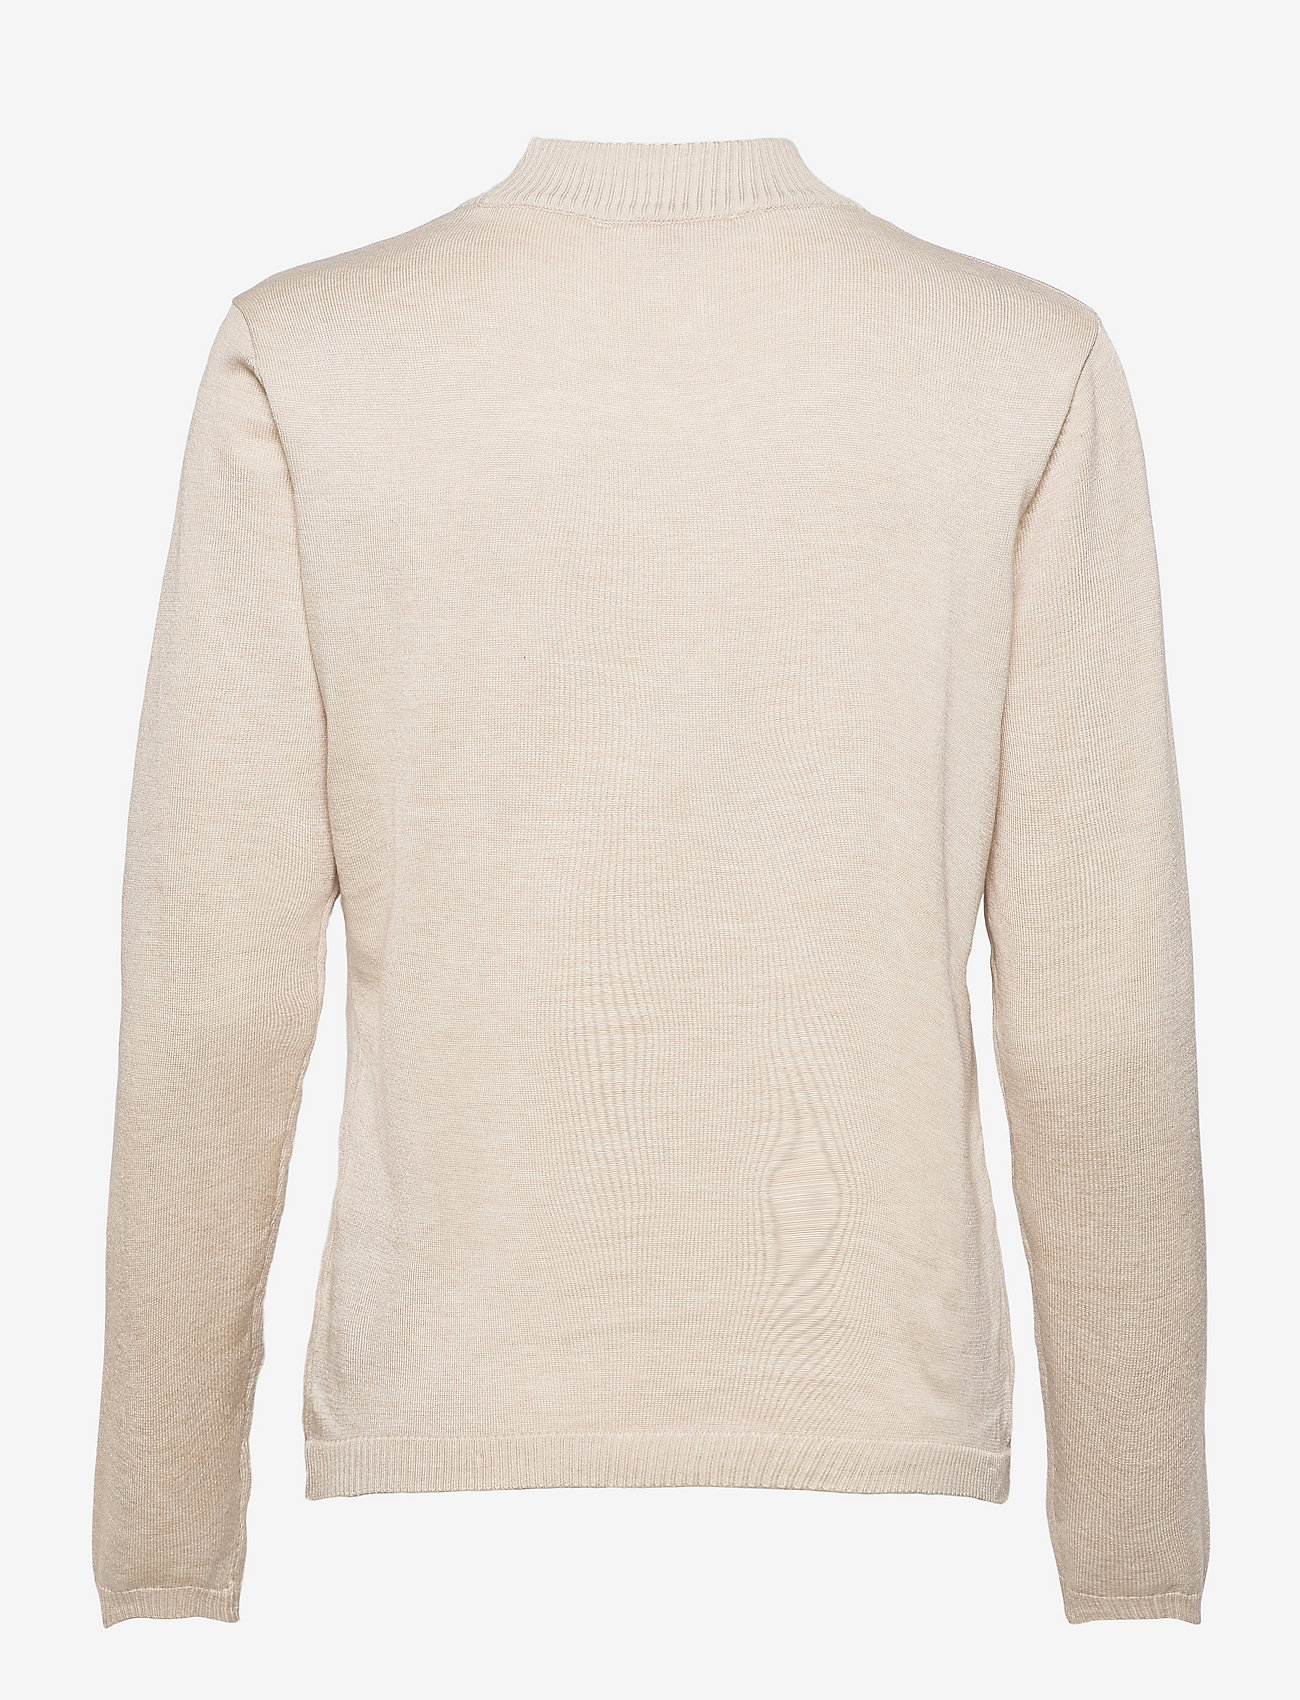 Srmarla Turtleneck (Whitecap Gray) (39.95 €) - Soft Rebels 79ZyB